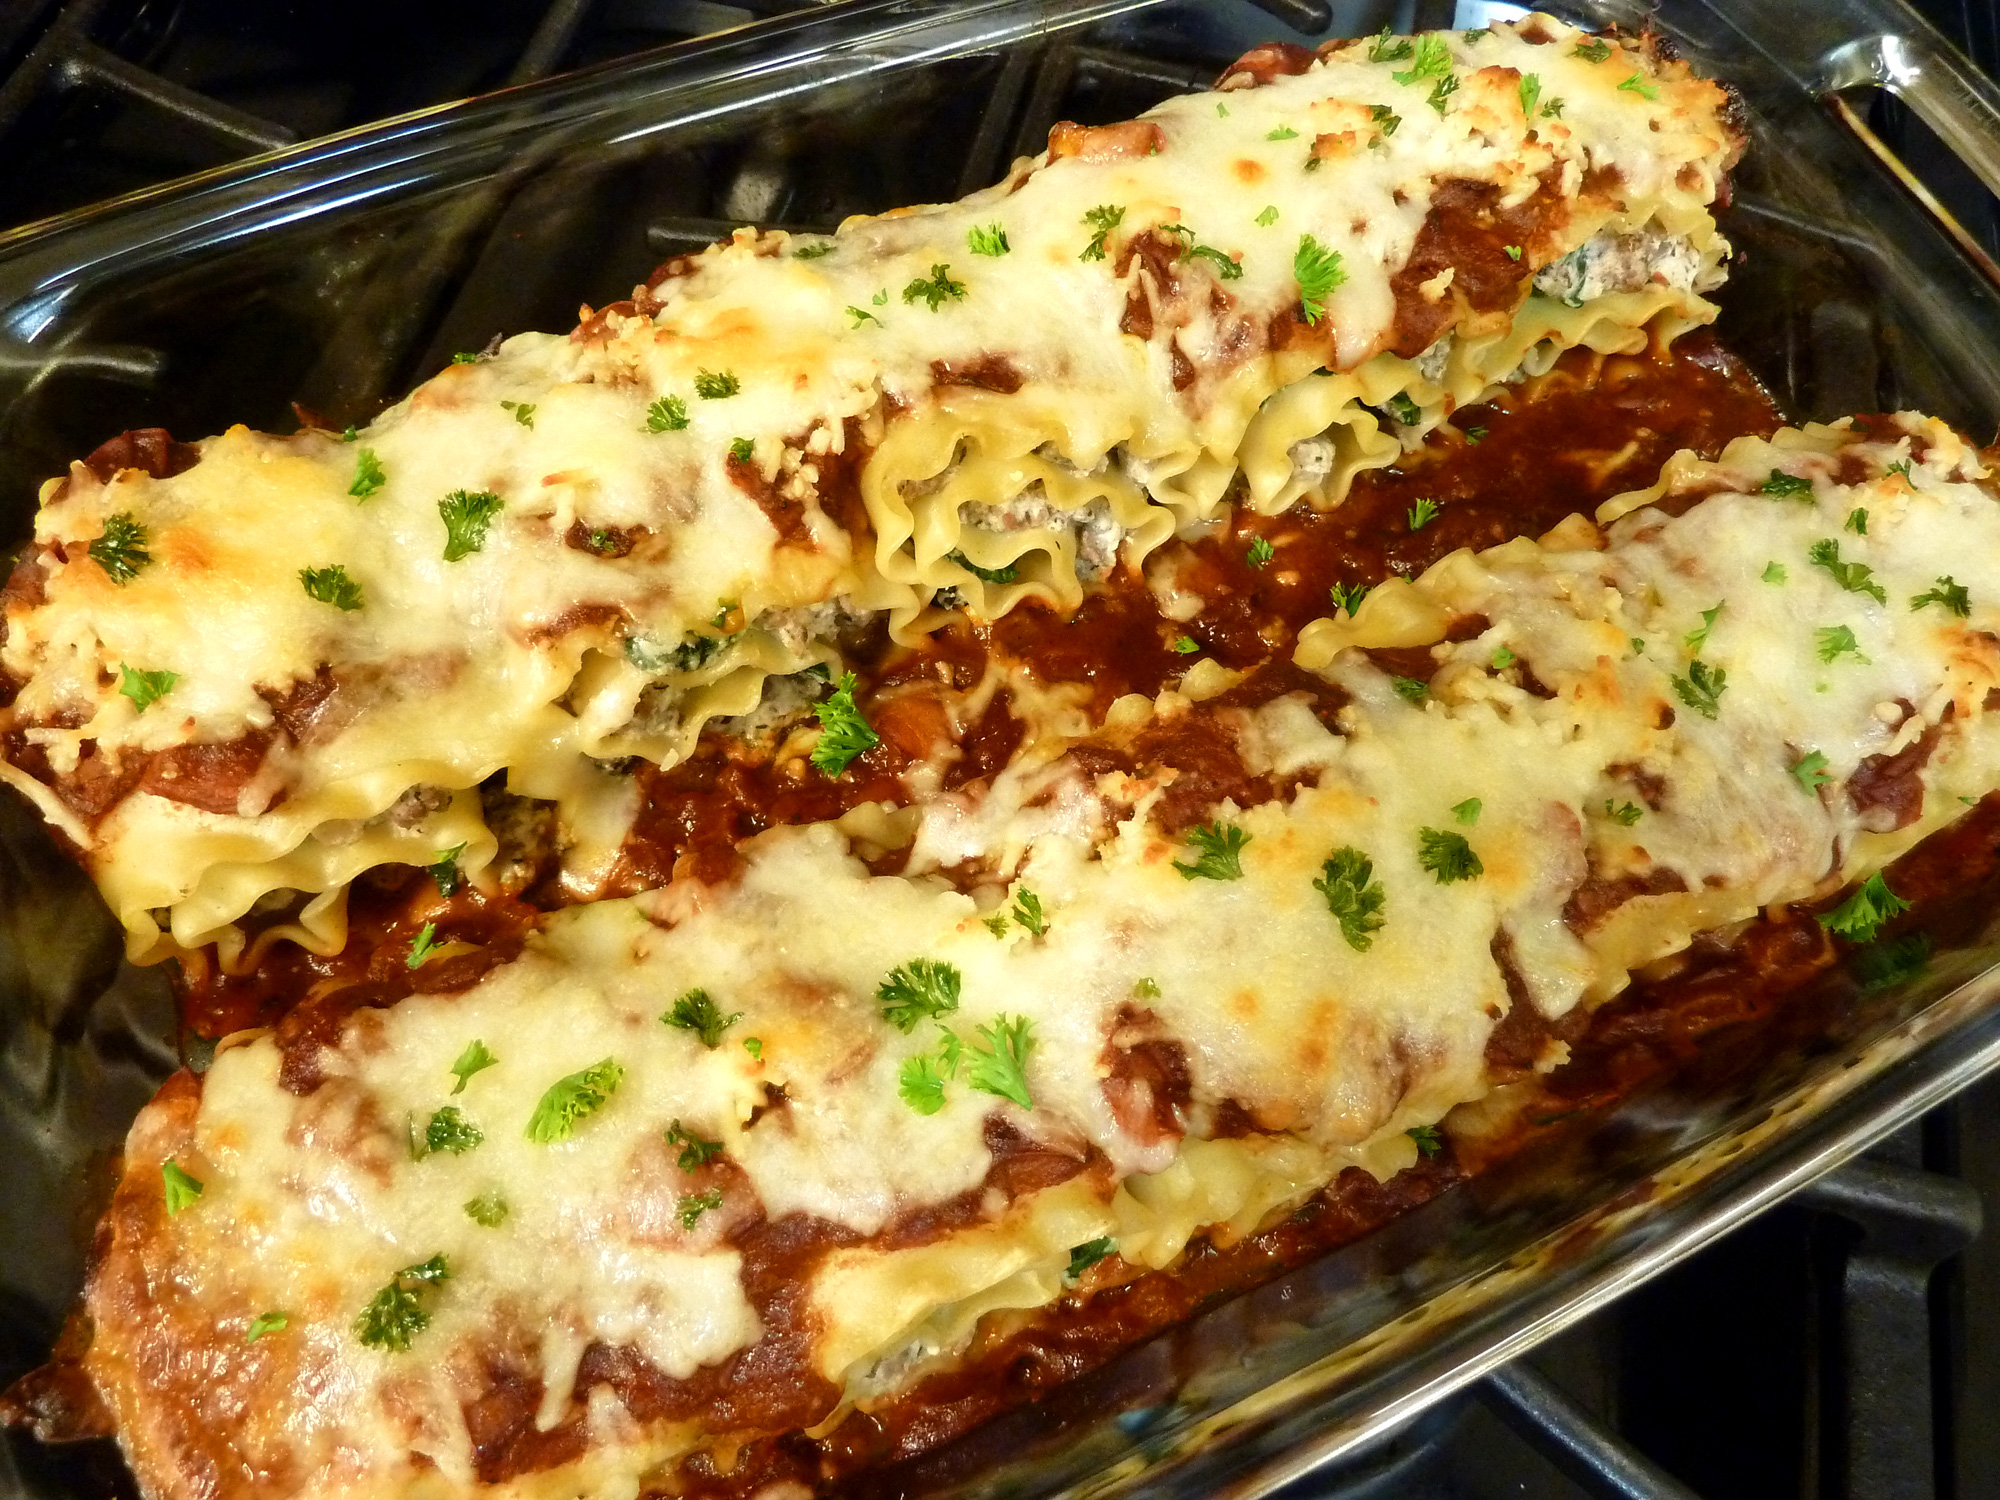 Dig into these hot stuffed lasagna rolls, straight from the oven.